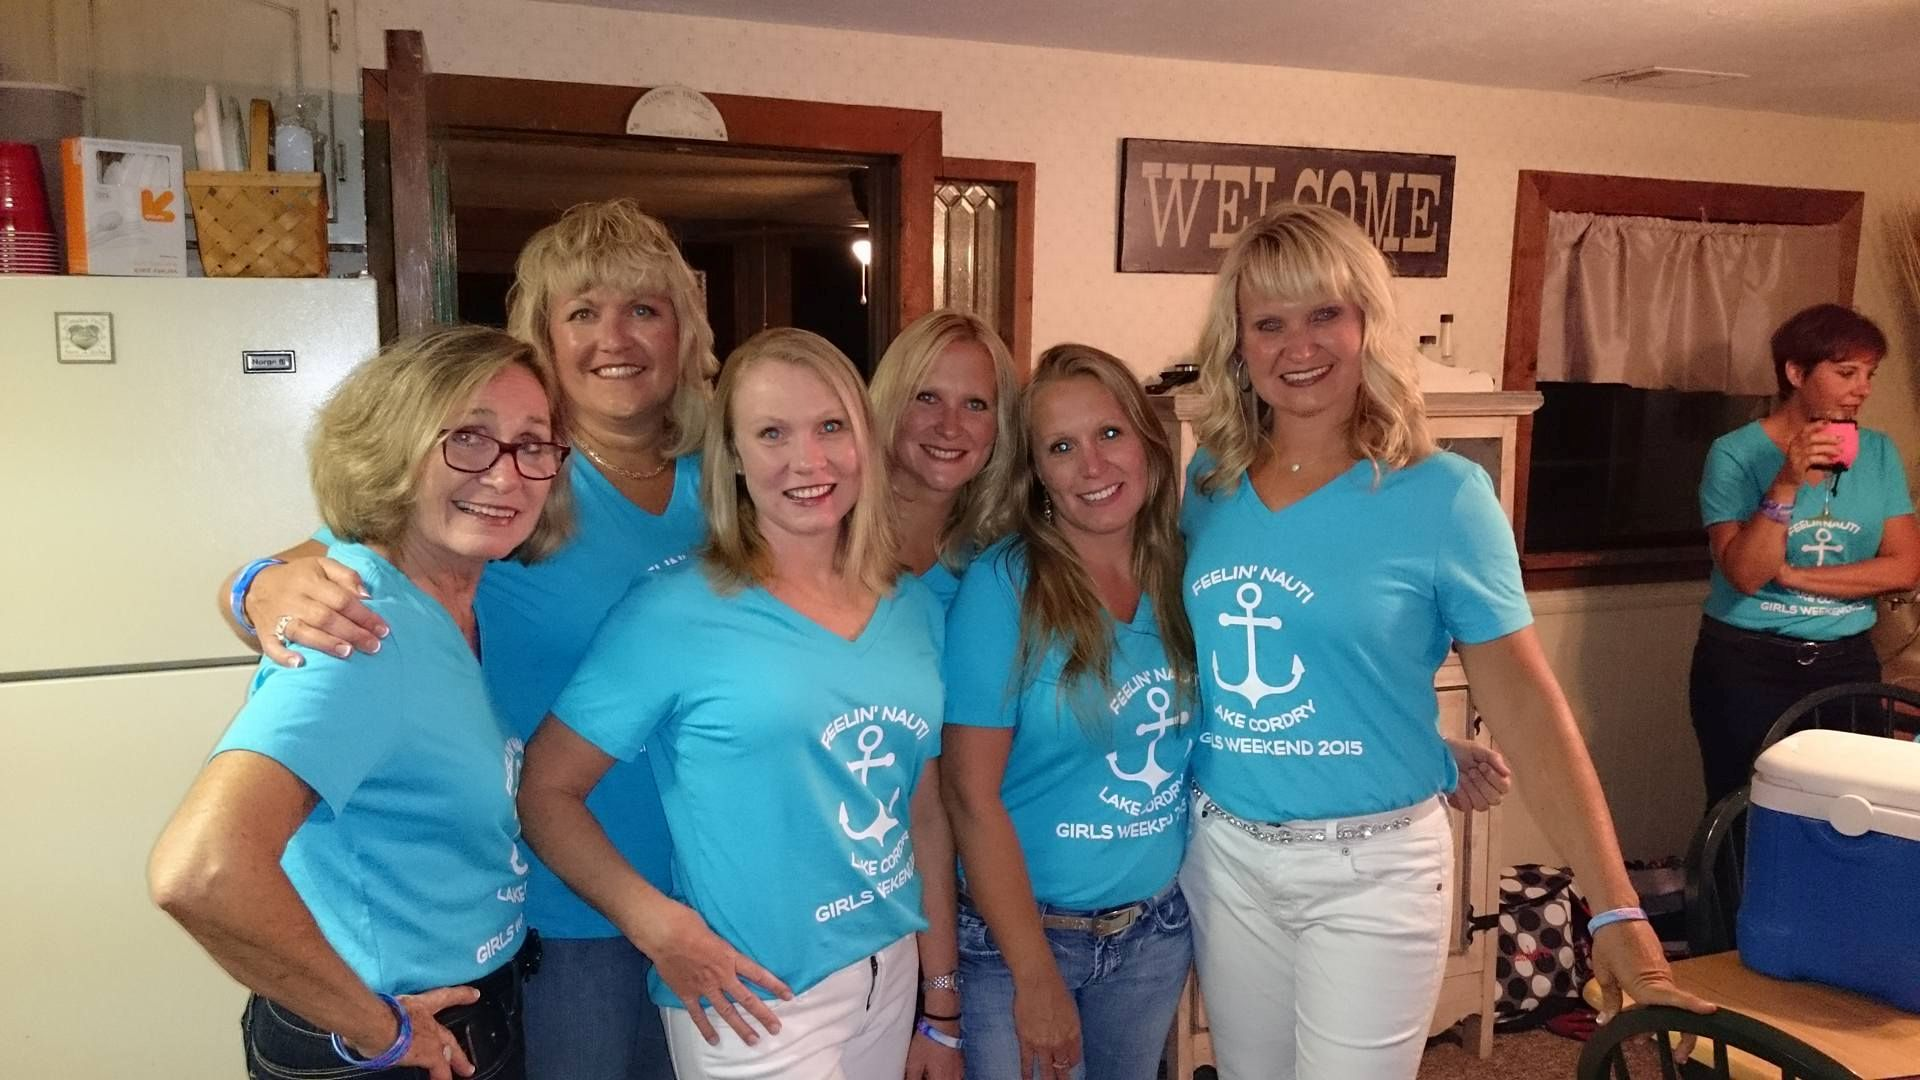 Design your own t-shirt female - Girls Weekend At Lake Cordry T Shirt Photo